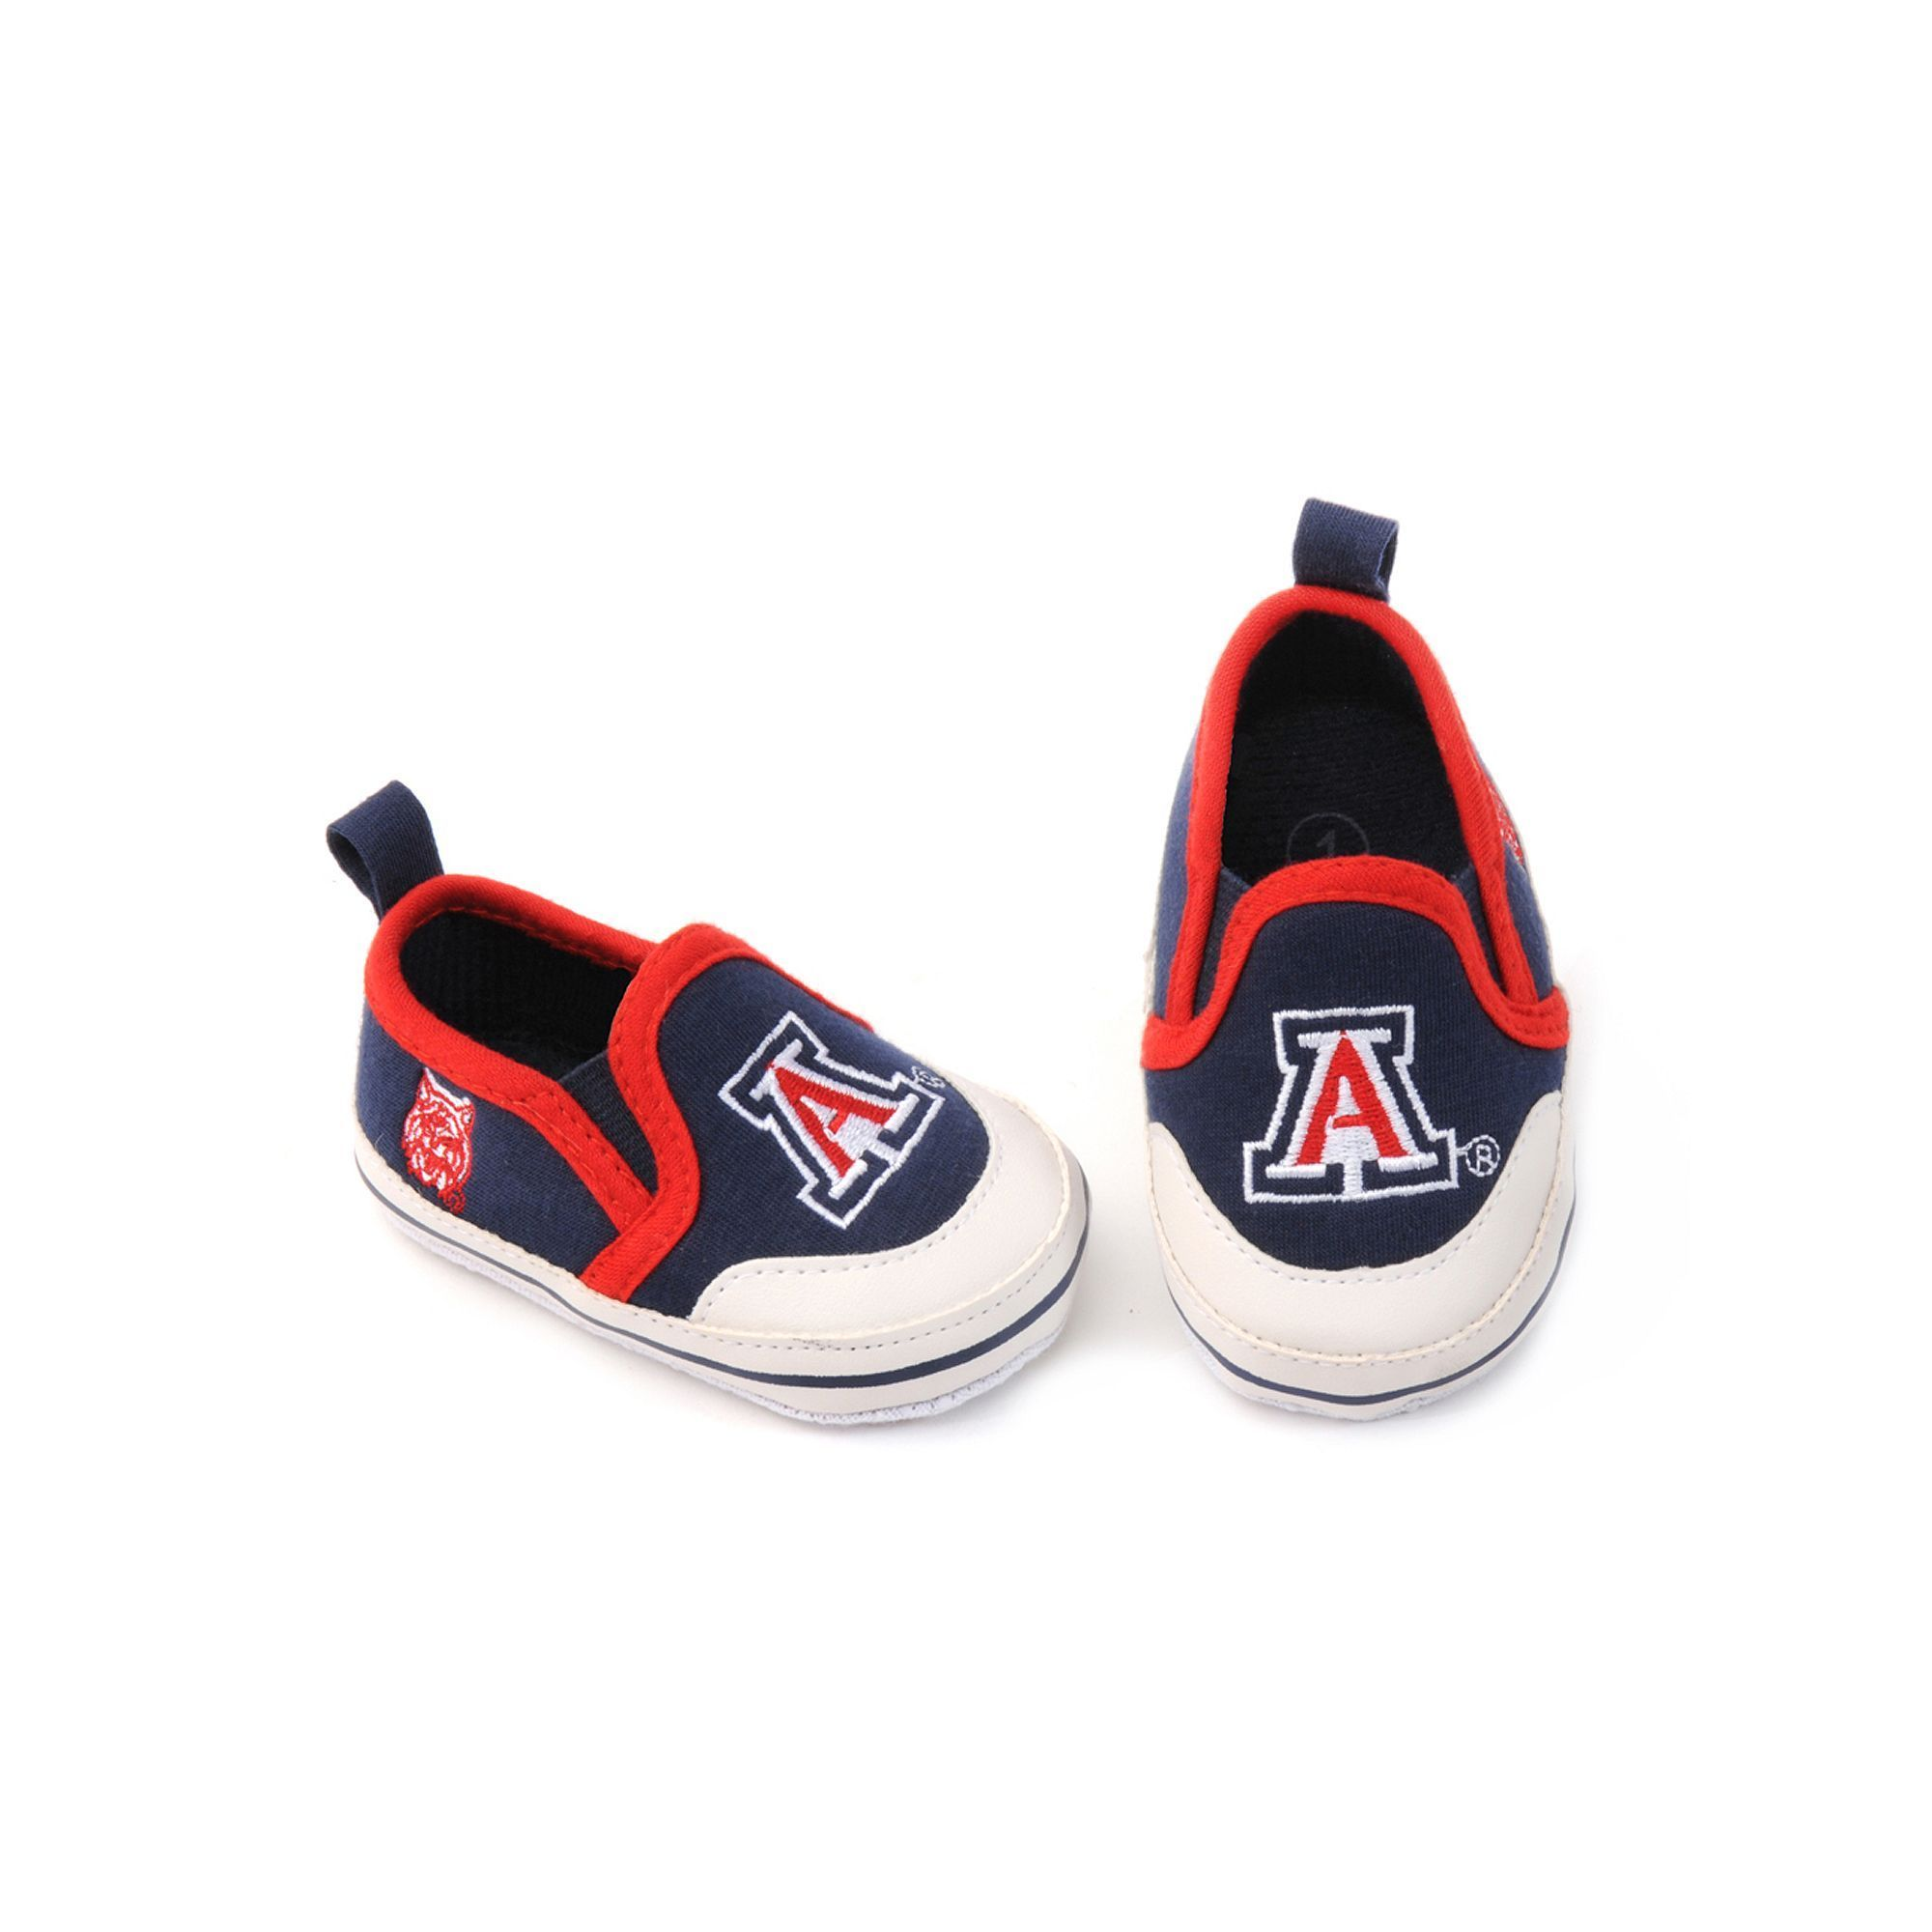 Arizona Wildcats Crib Shoes Baby Infant Uni Size 9 12MONTHS